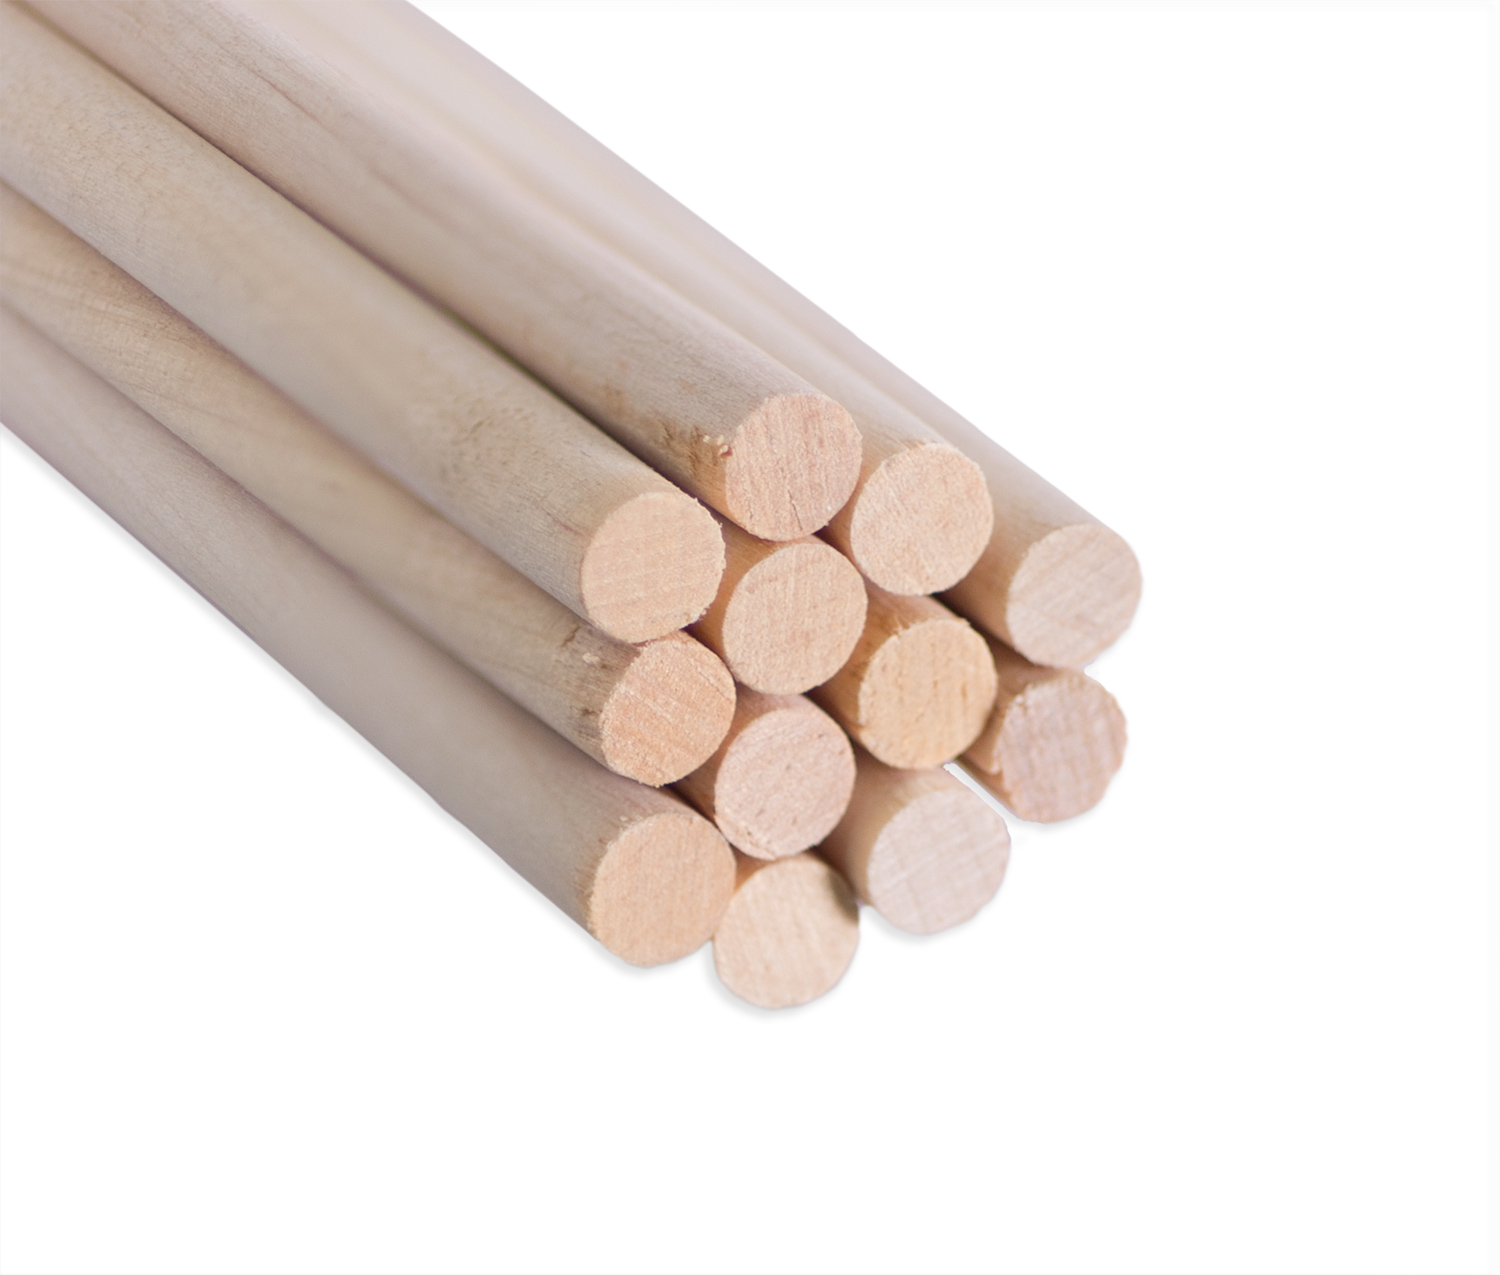 "Wood Dowel Rod 1/4"" x 12"" - 12 Pack"